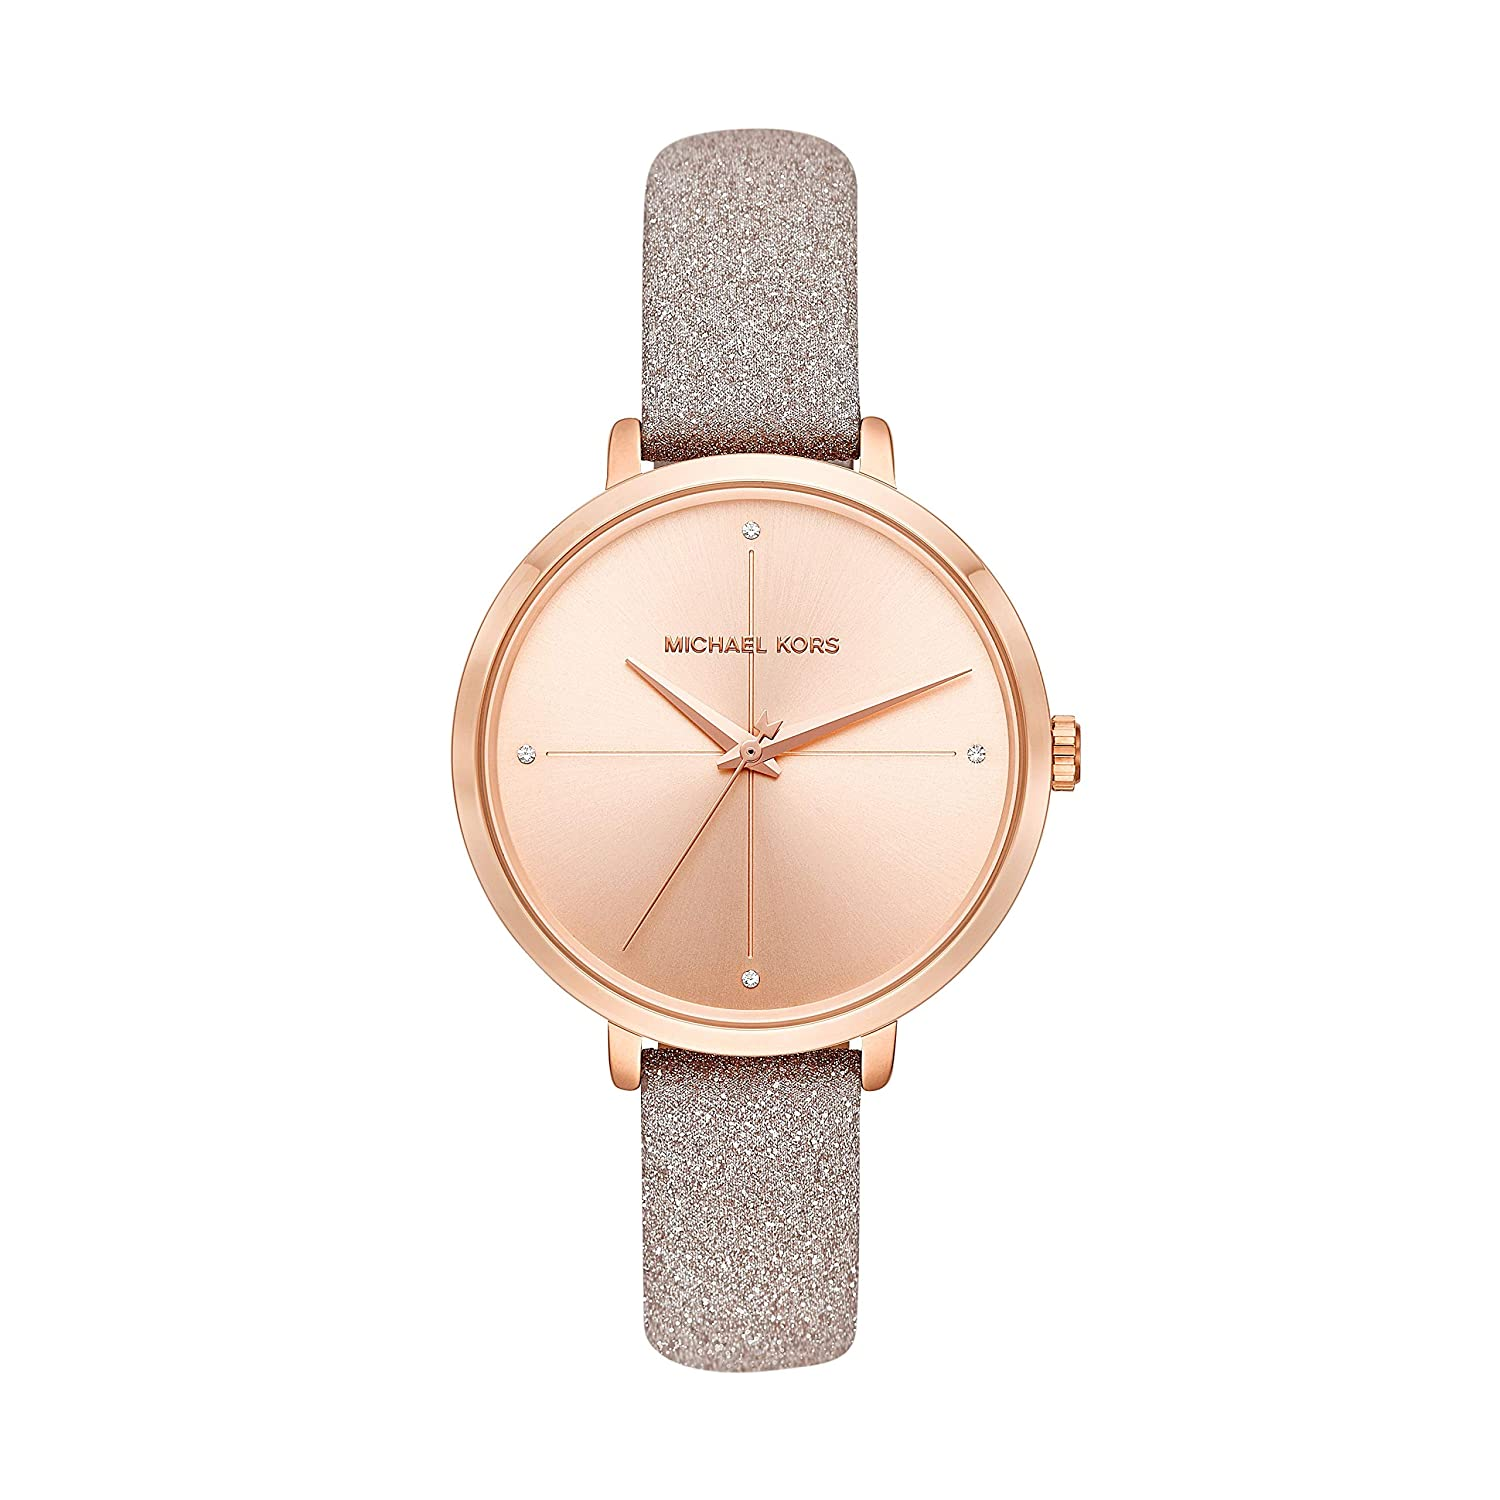 57bf9409fbe6 Amazon.com  Michael Kors Women s Charley Rose Gold Leather Watch MK2794   Watches